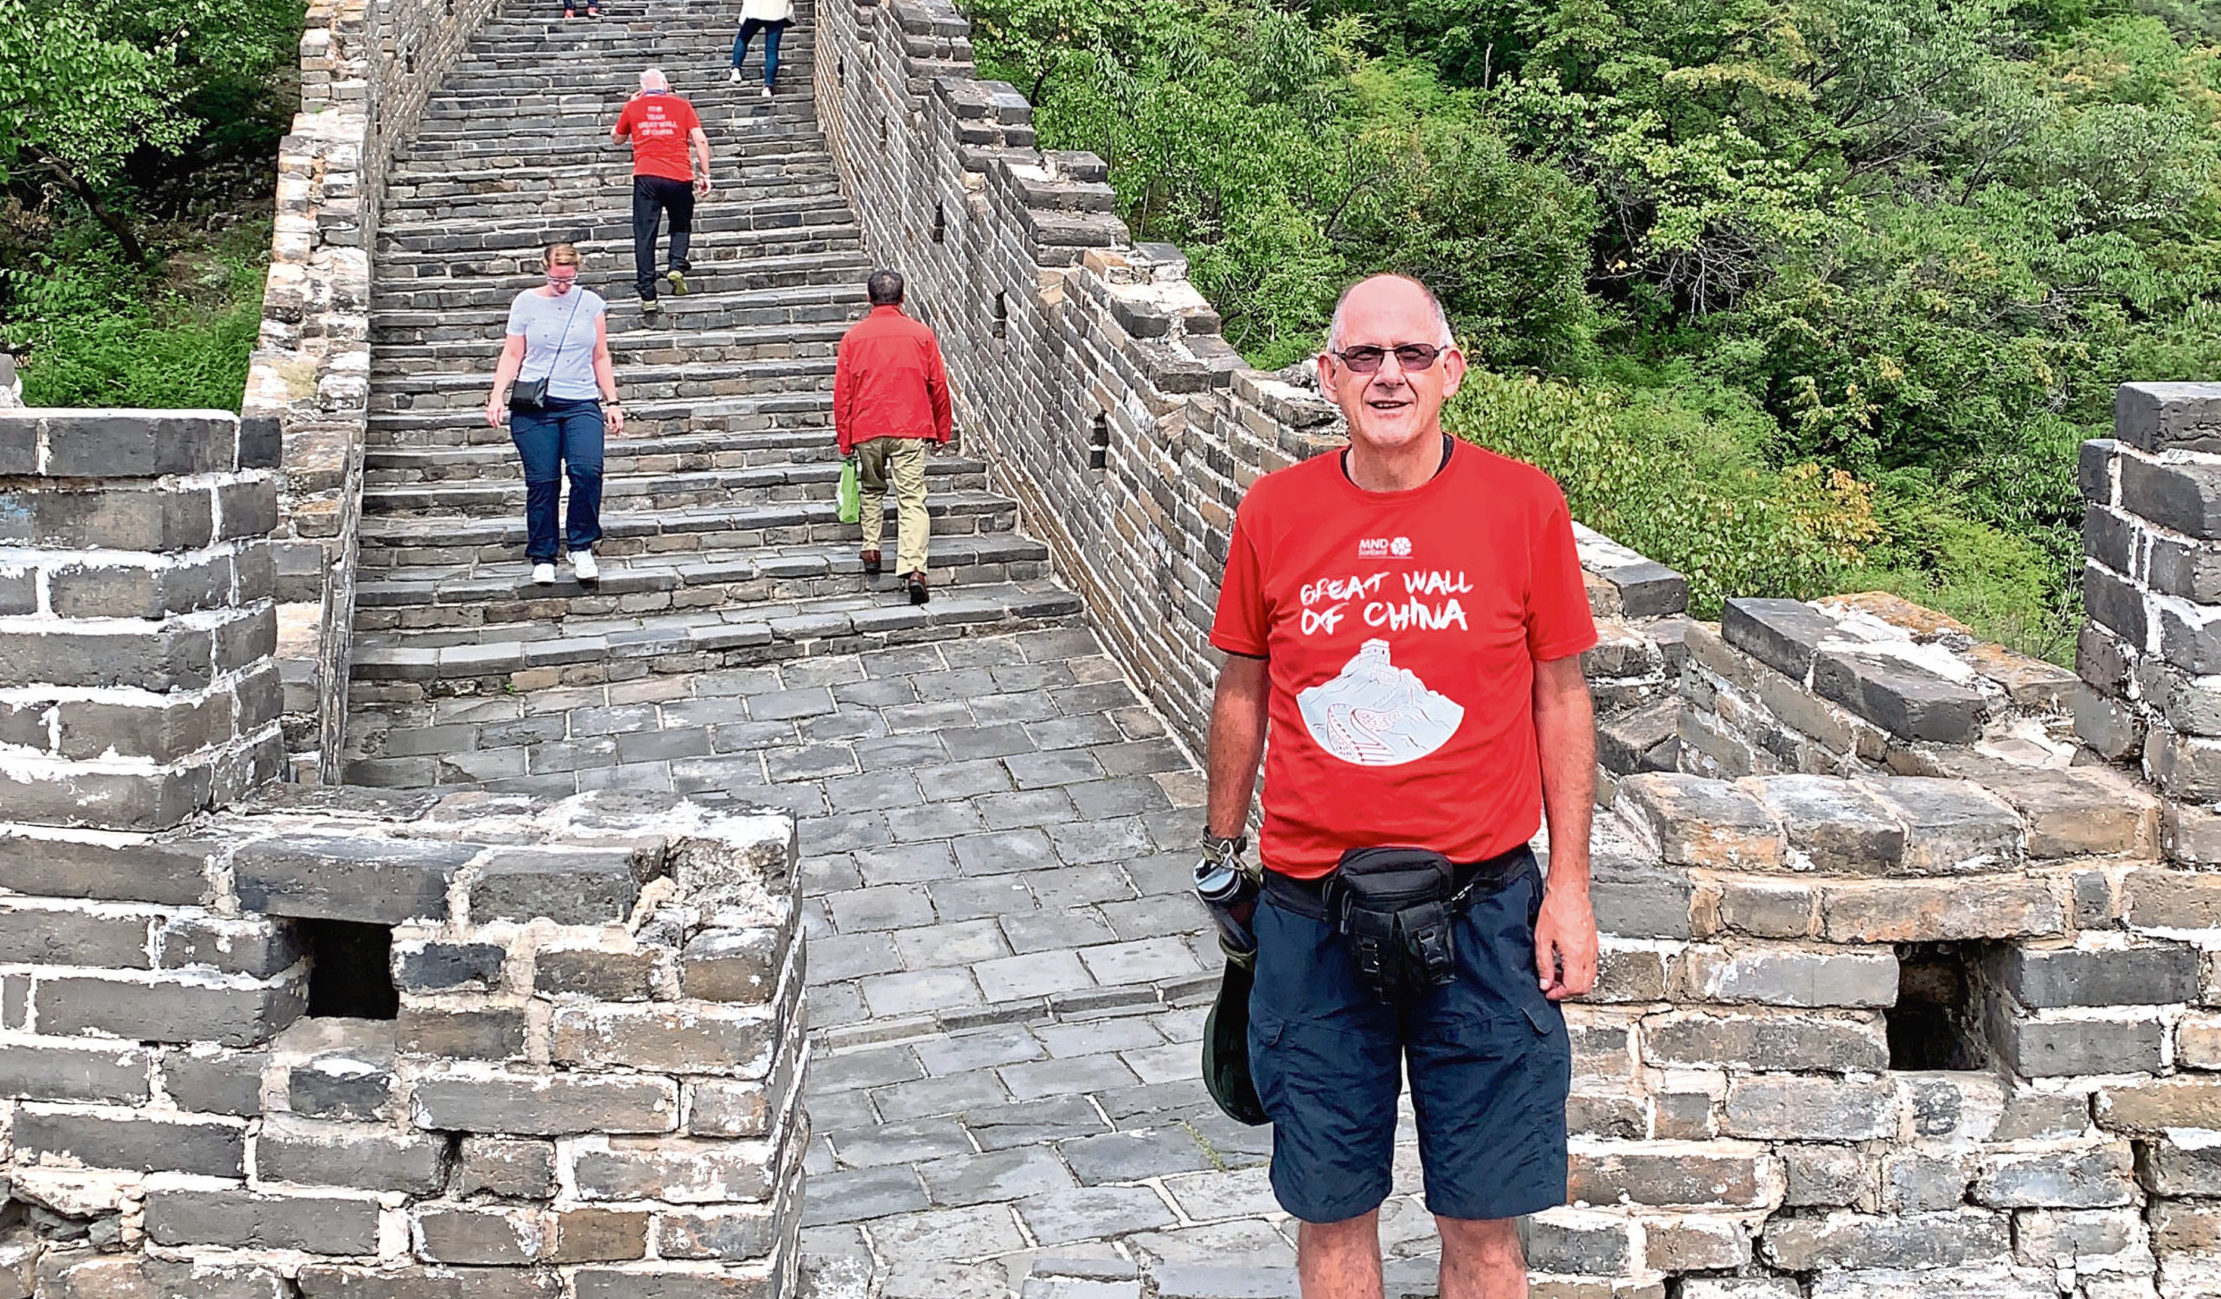 Stanley Ure returned home earlier this week after completing a ten day trek of the Great Wall of China to raise funds for MND Scotland.